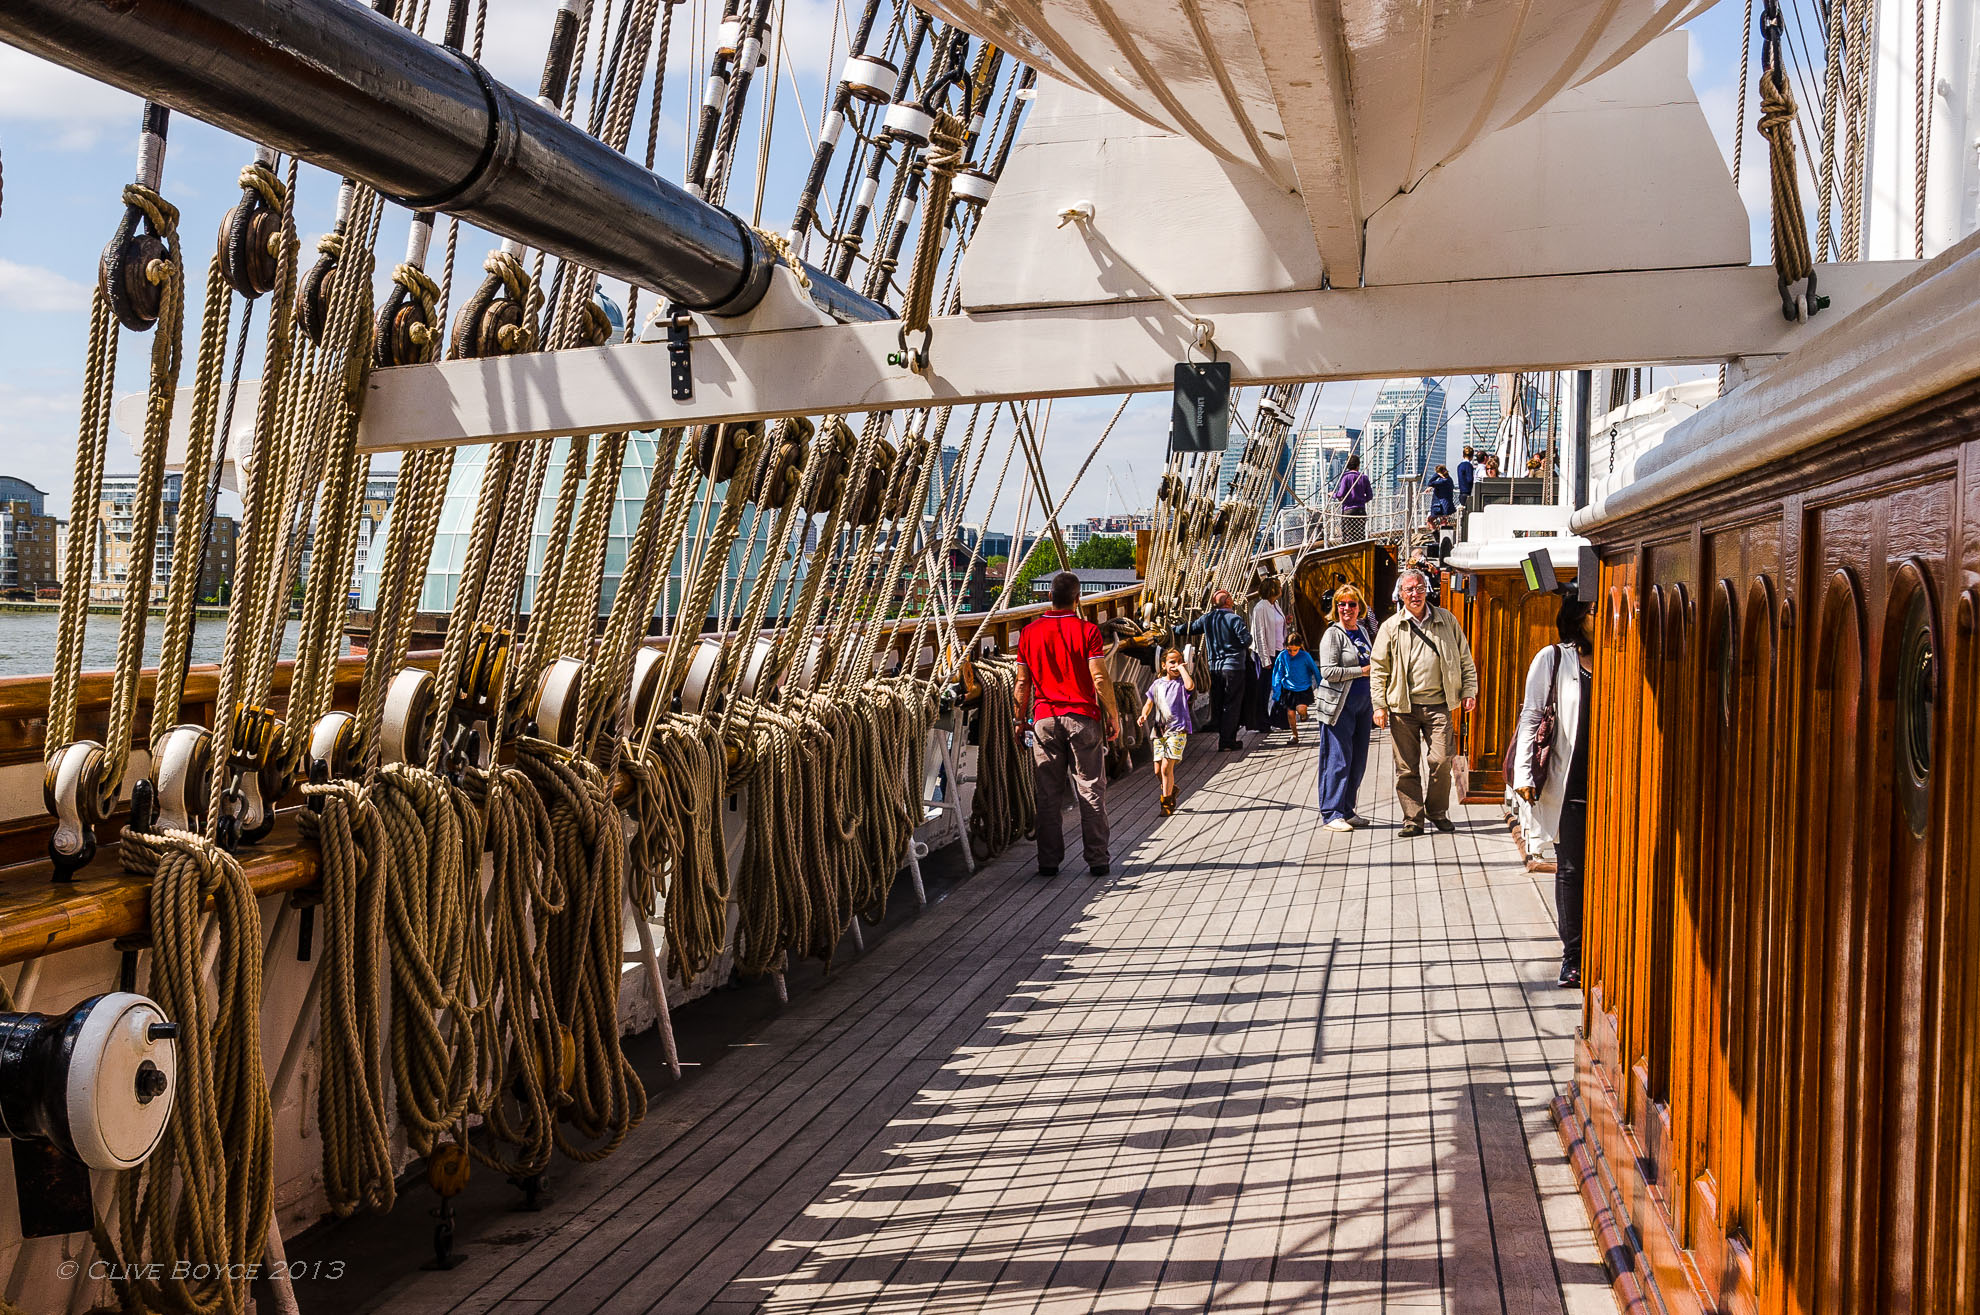 Deck of the Cutty Sark